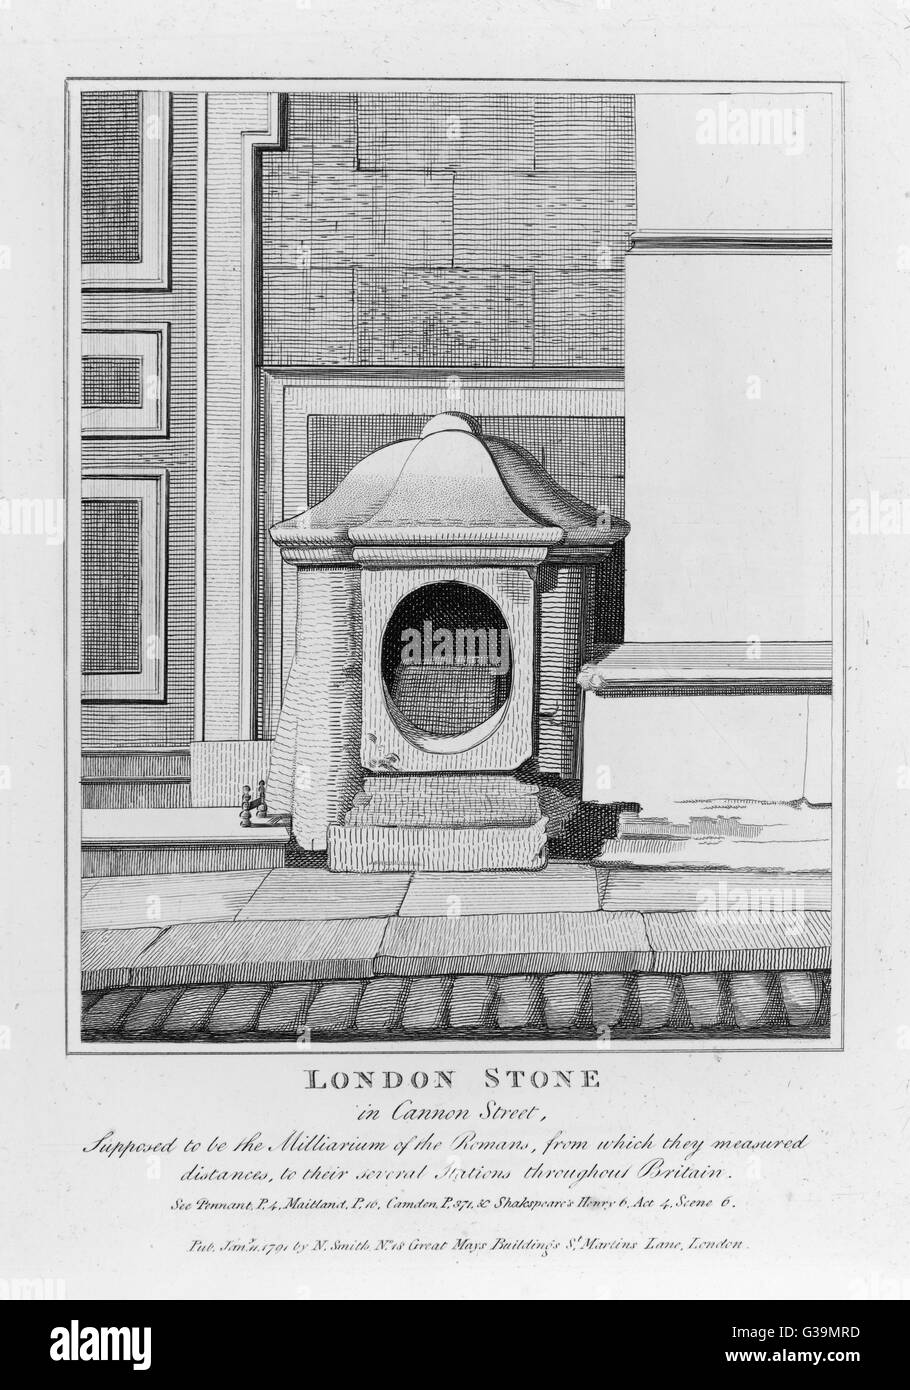 Cannon Street : an ancient  stone possibly originating as  a milestone during Roman  times, today incorporated into - Stock Image